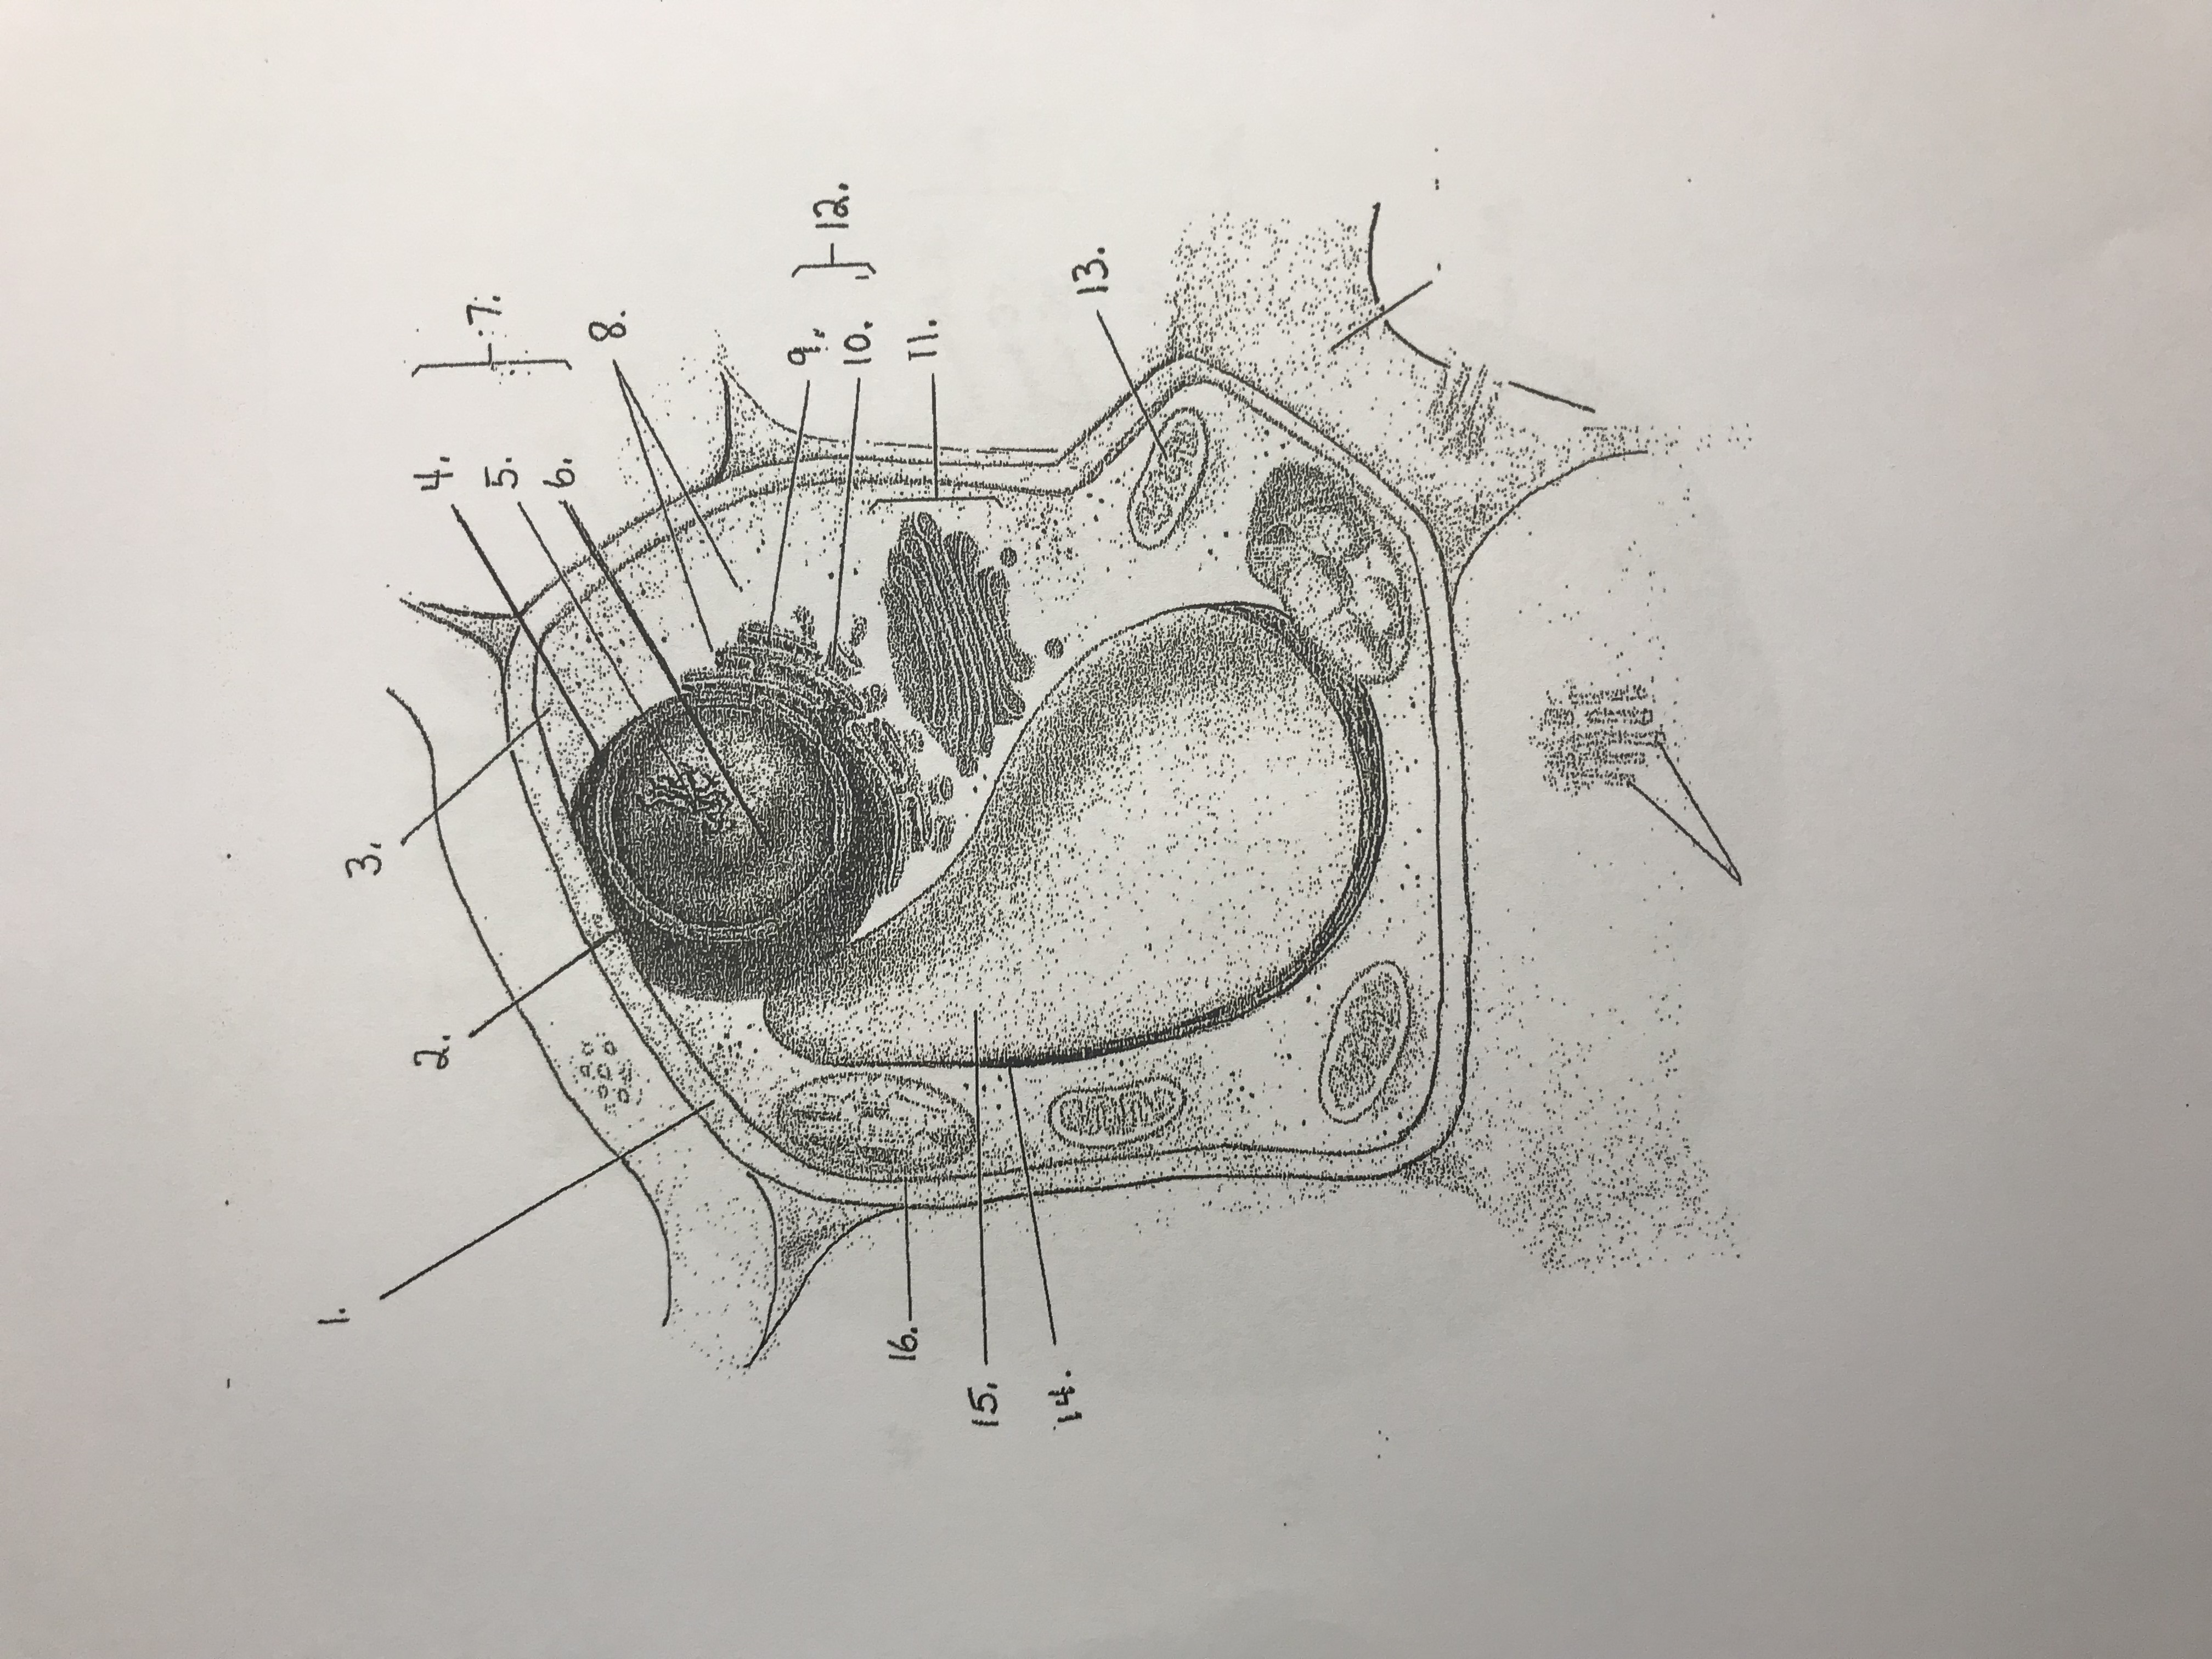 35 Sketch Of The Respiration Organelle And Label The Parts